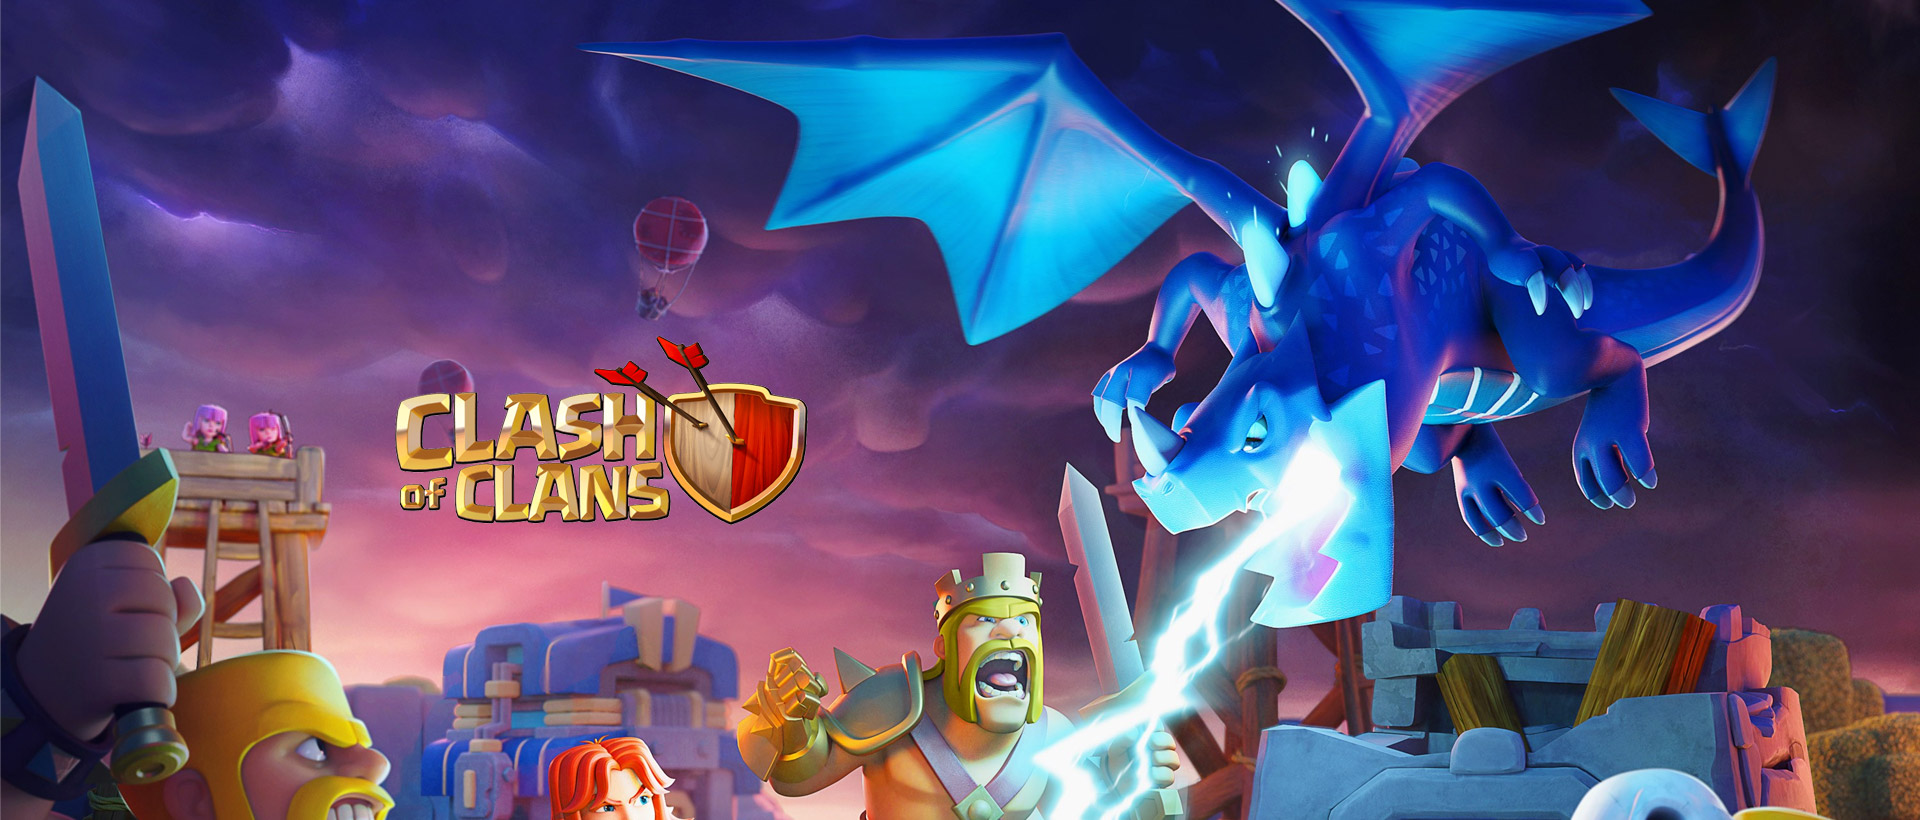 Clash Of Clans Pc Download Free Coc Mod Apk For Windows 8 1 7 10 Firedout